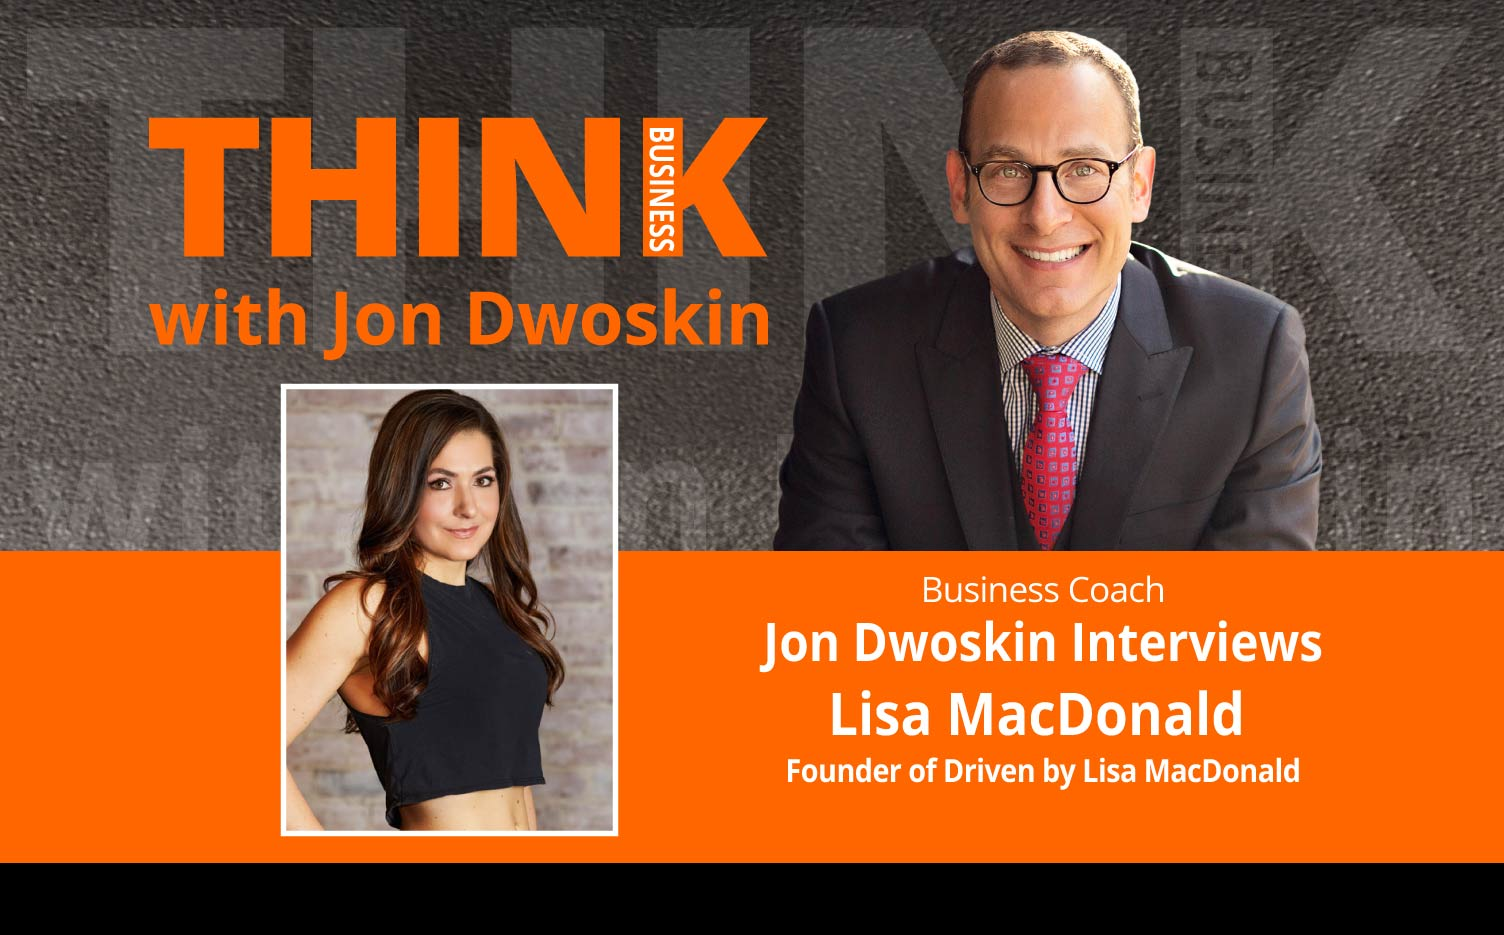 THINK Business Podcast: Jon Dwoskin Interviews Lisa MacDonald, Founder of Driven by Lisa MacDonald